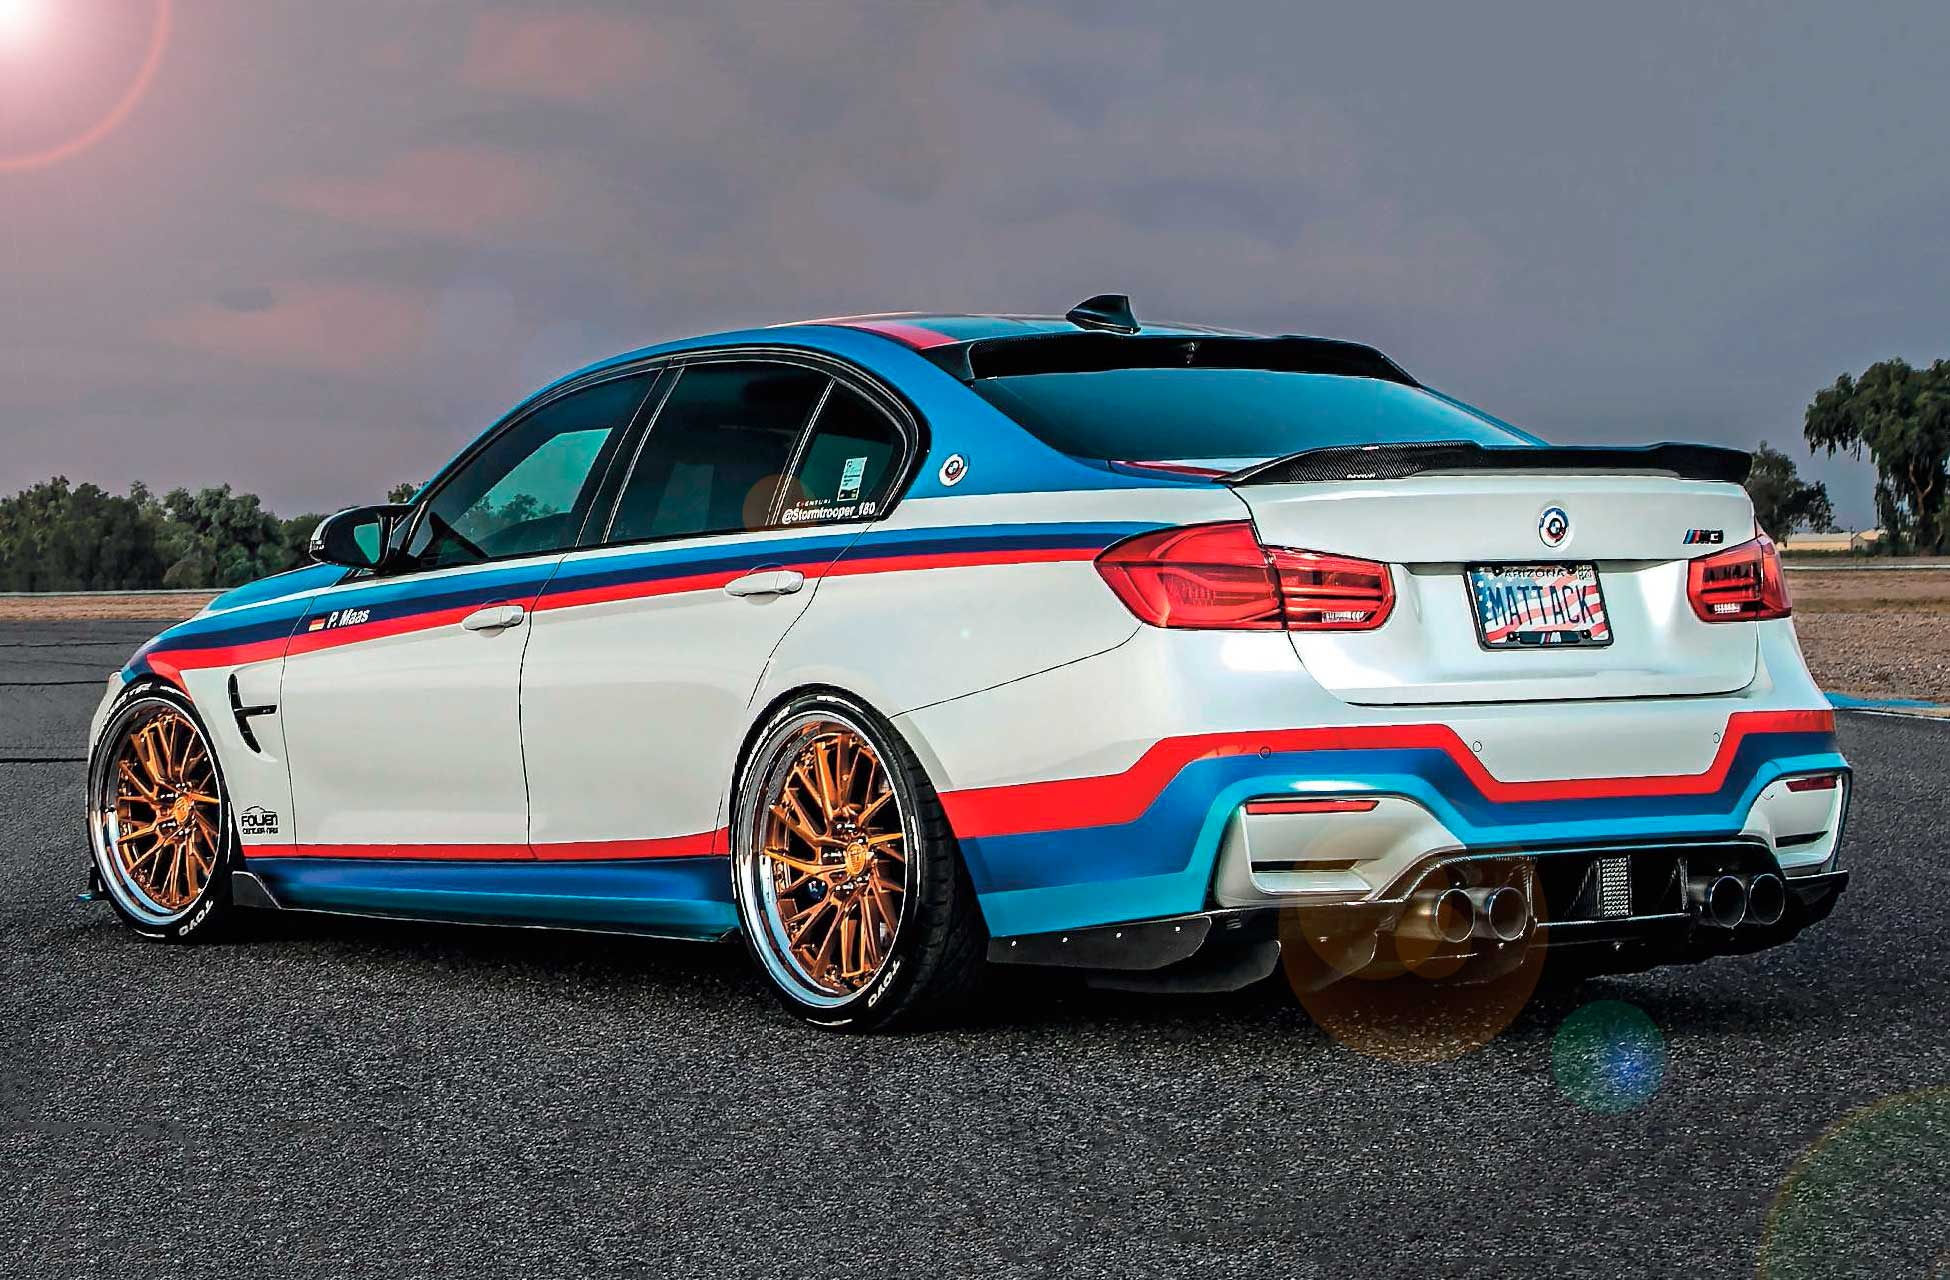 Jaw Dropping Show Stopping 650bhp Bmw M3 F80 Drive My Blogs Drive